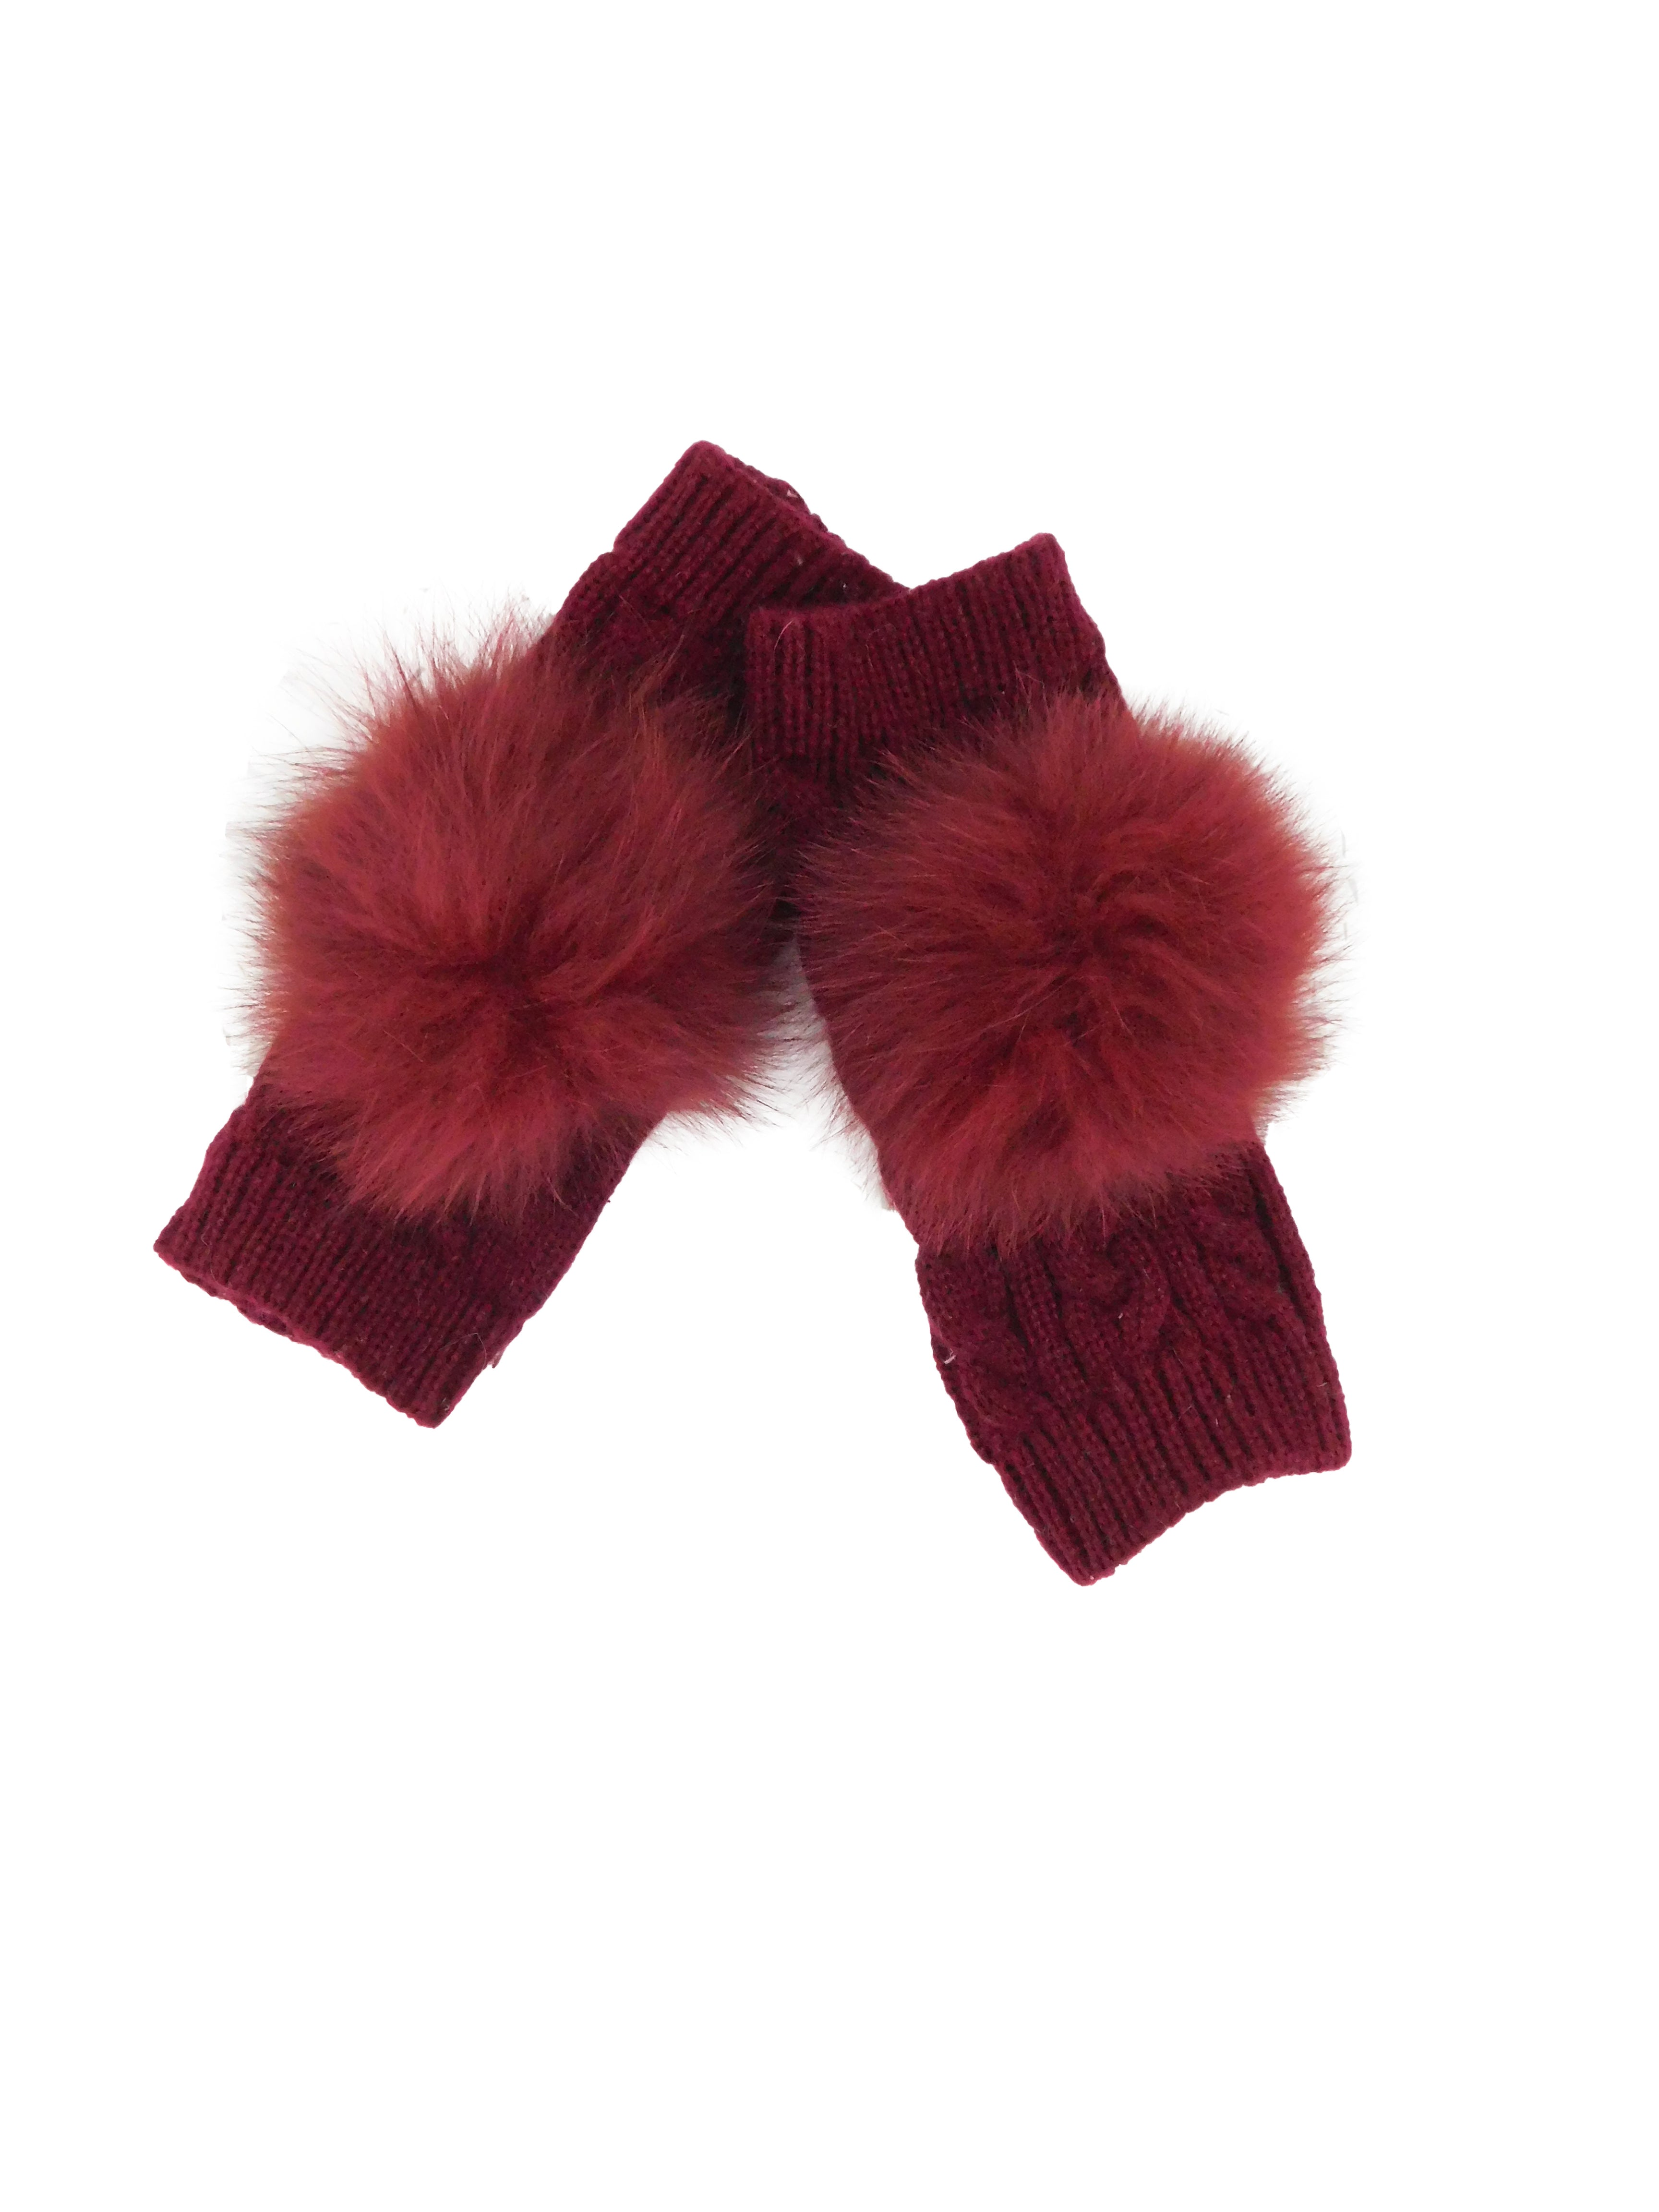 Fingerless Gloves with Fox Fur Pom - paulamariecollection